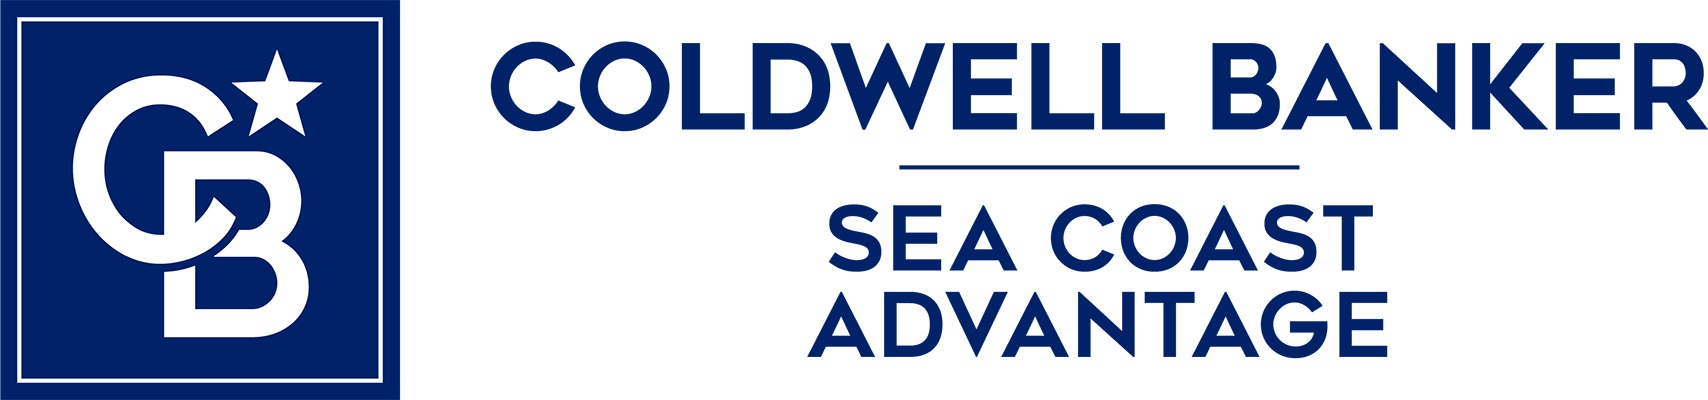 Paul Oldham - Coldwell Banker Sea Coast Advantage Realty